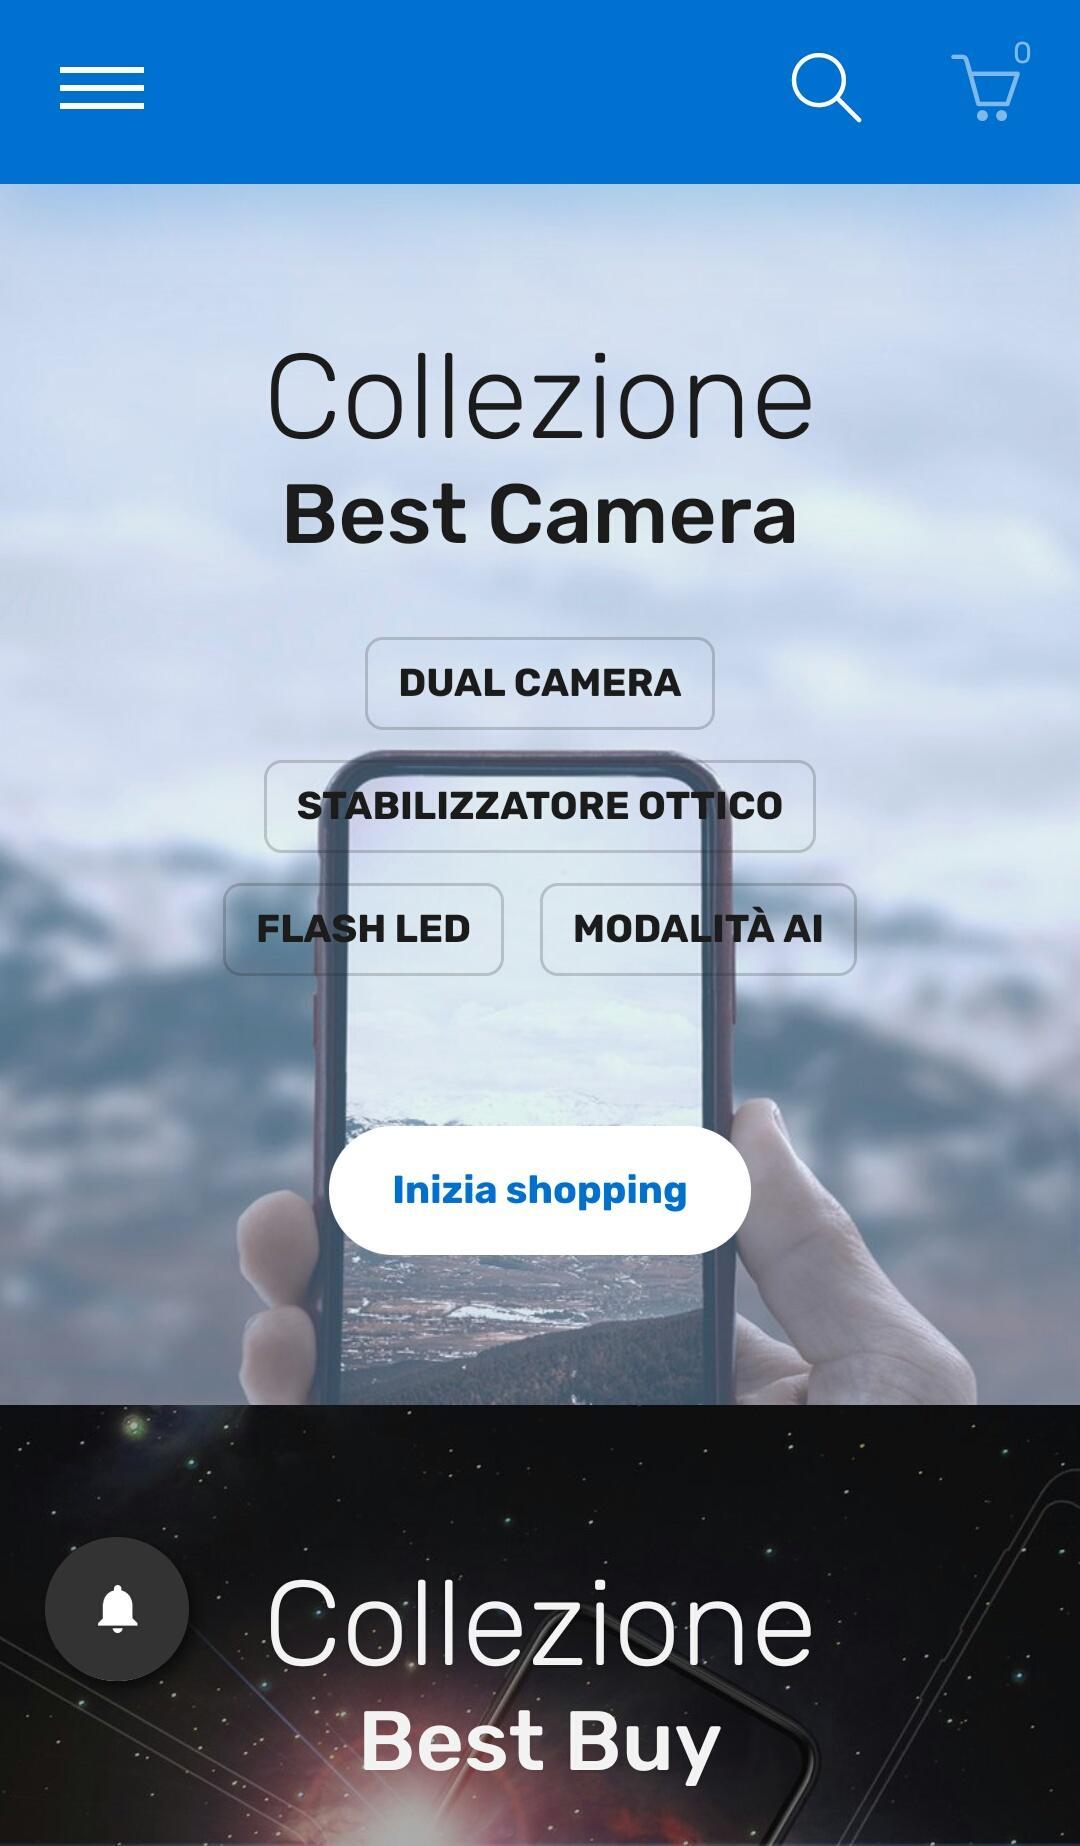 example of banner image size for mobile version in Shopify store